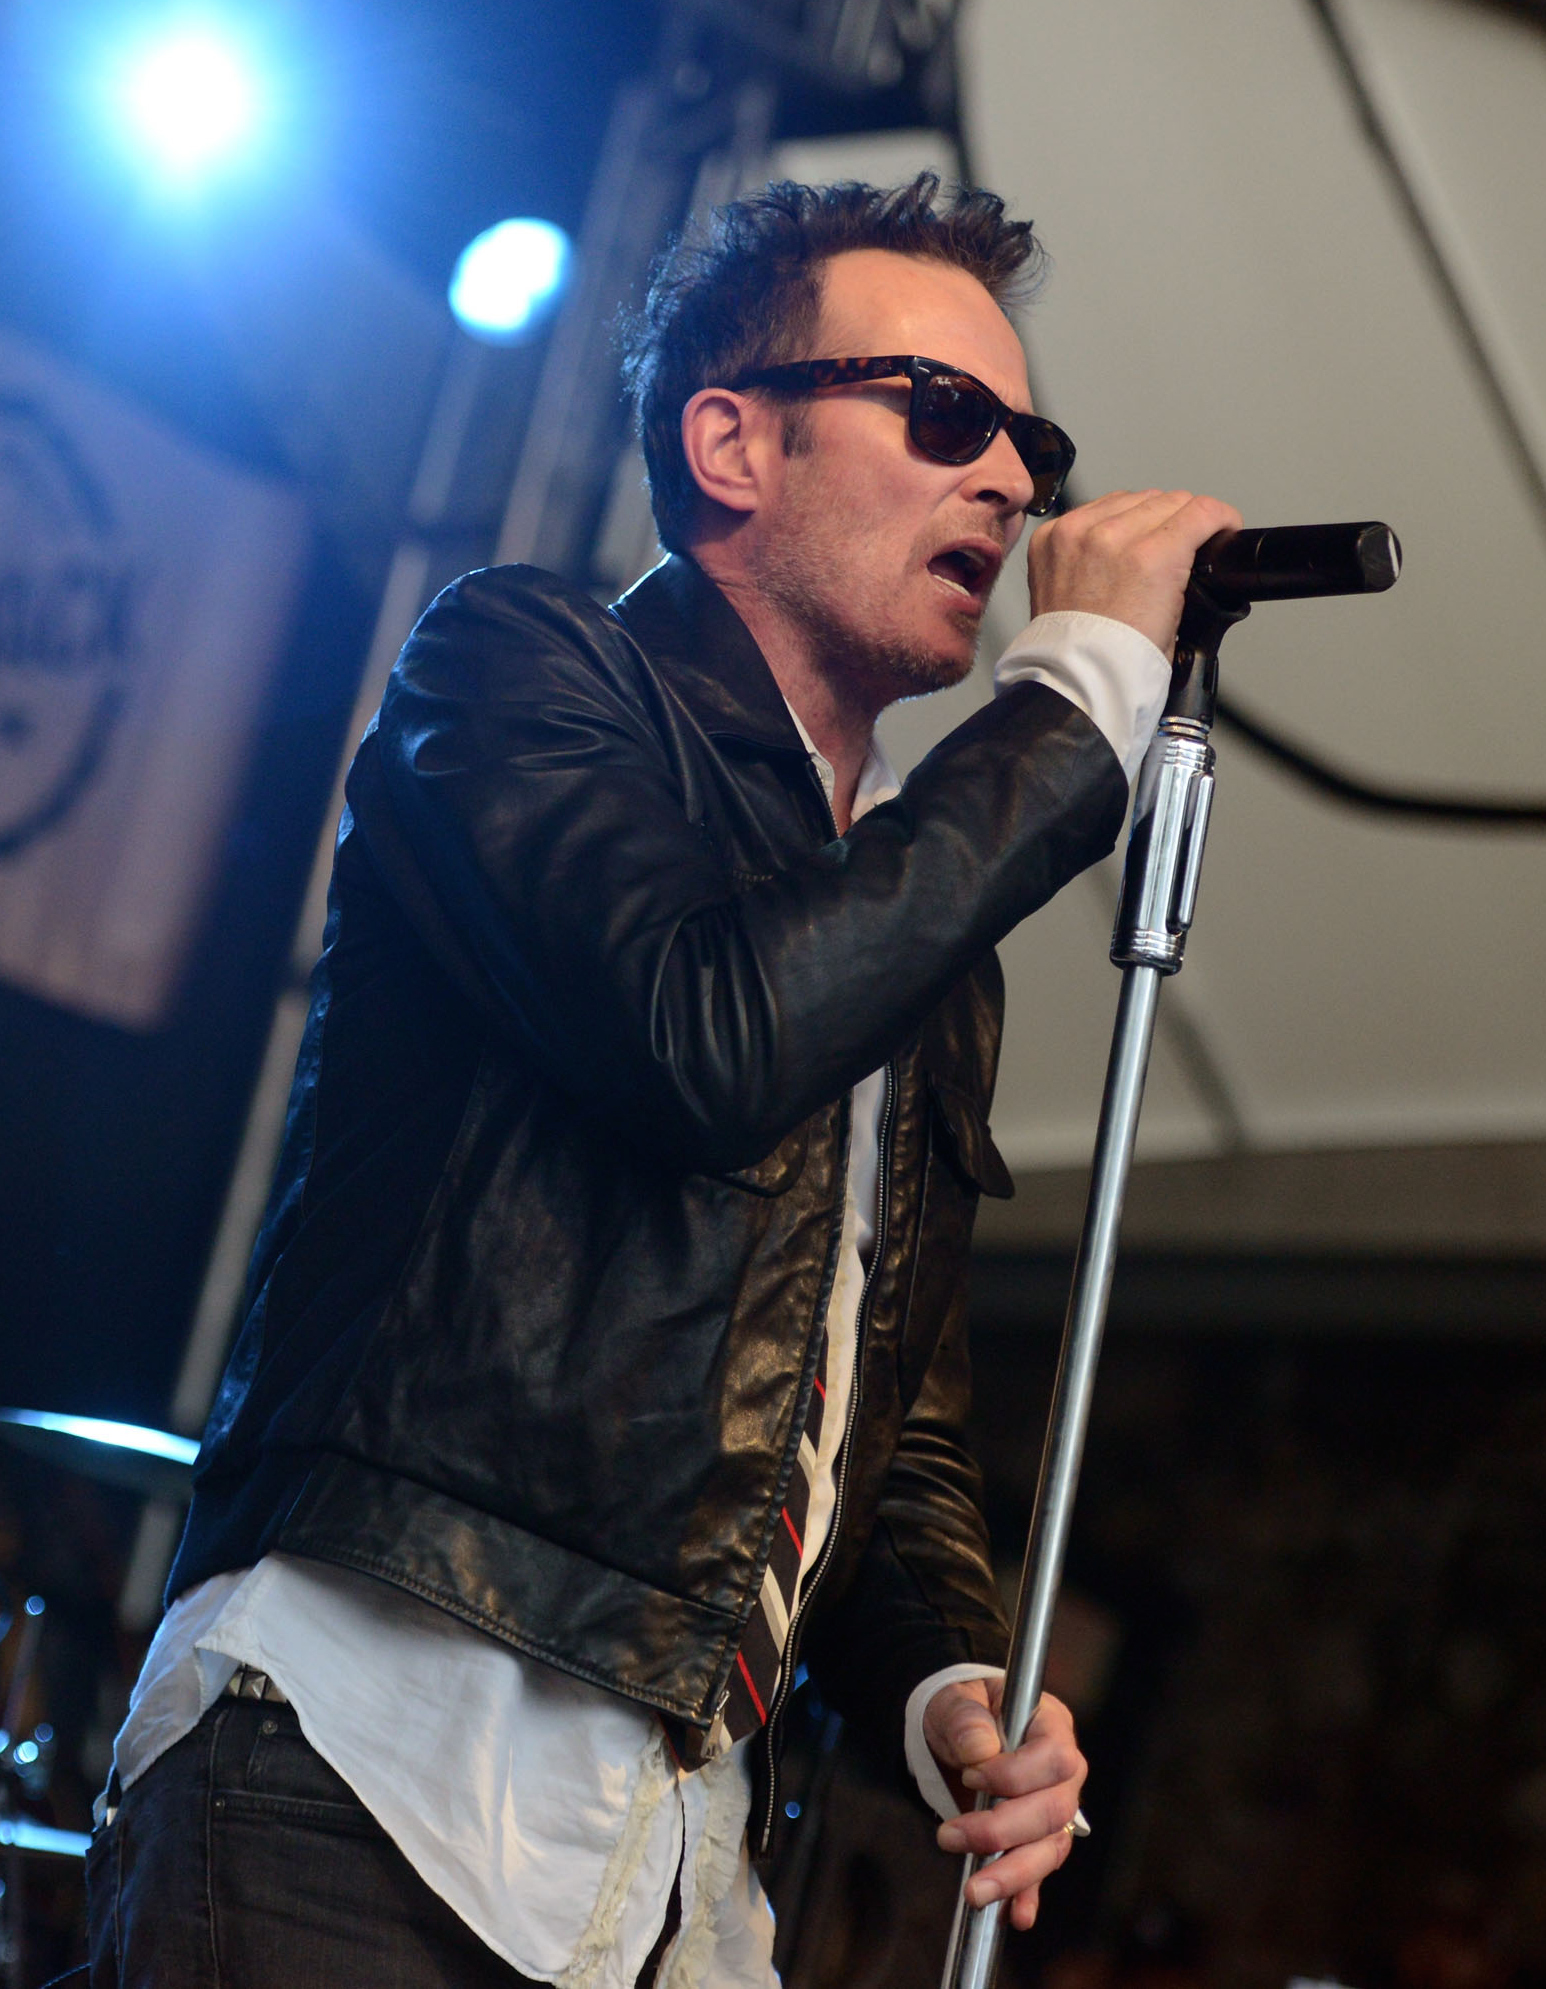 Scott Weiland Embarrassed By Bad Behavior At Boston Meet And Greet